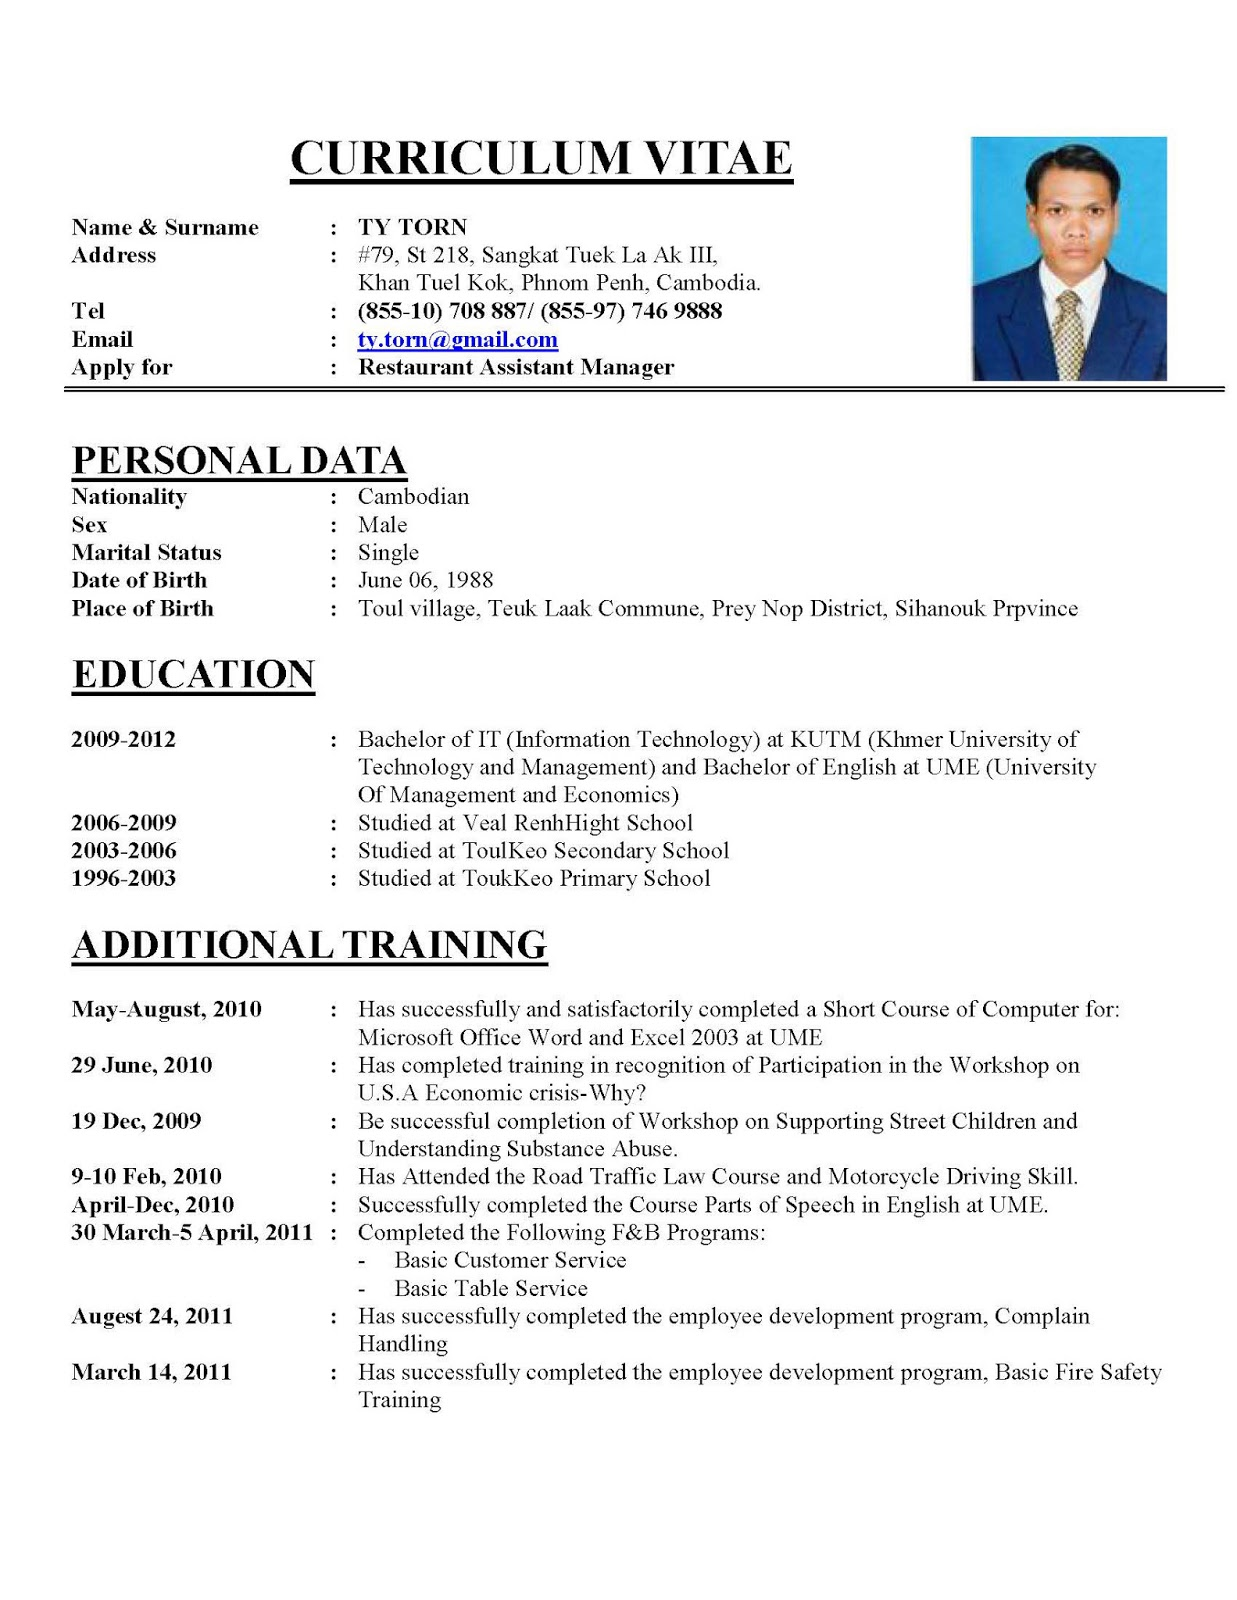 curriculum vitae template for google docs cv and resume curriculum vitae template for google docs professional resume templates from google docs cv template examples writing